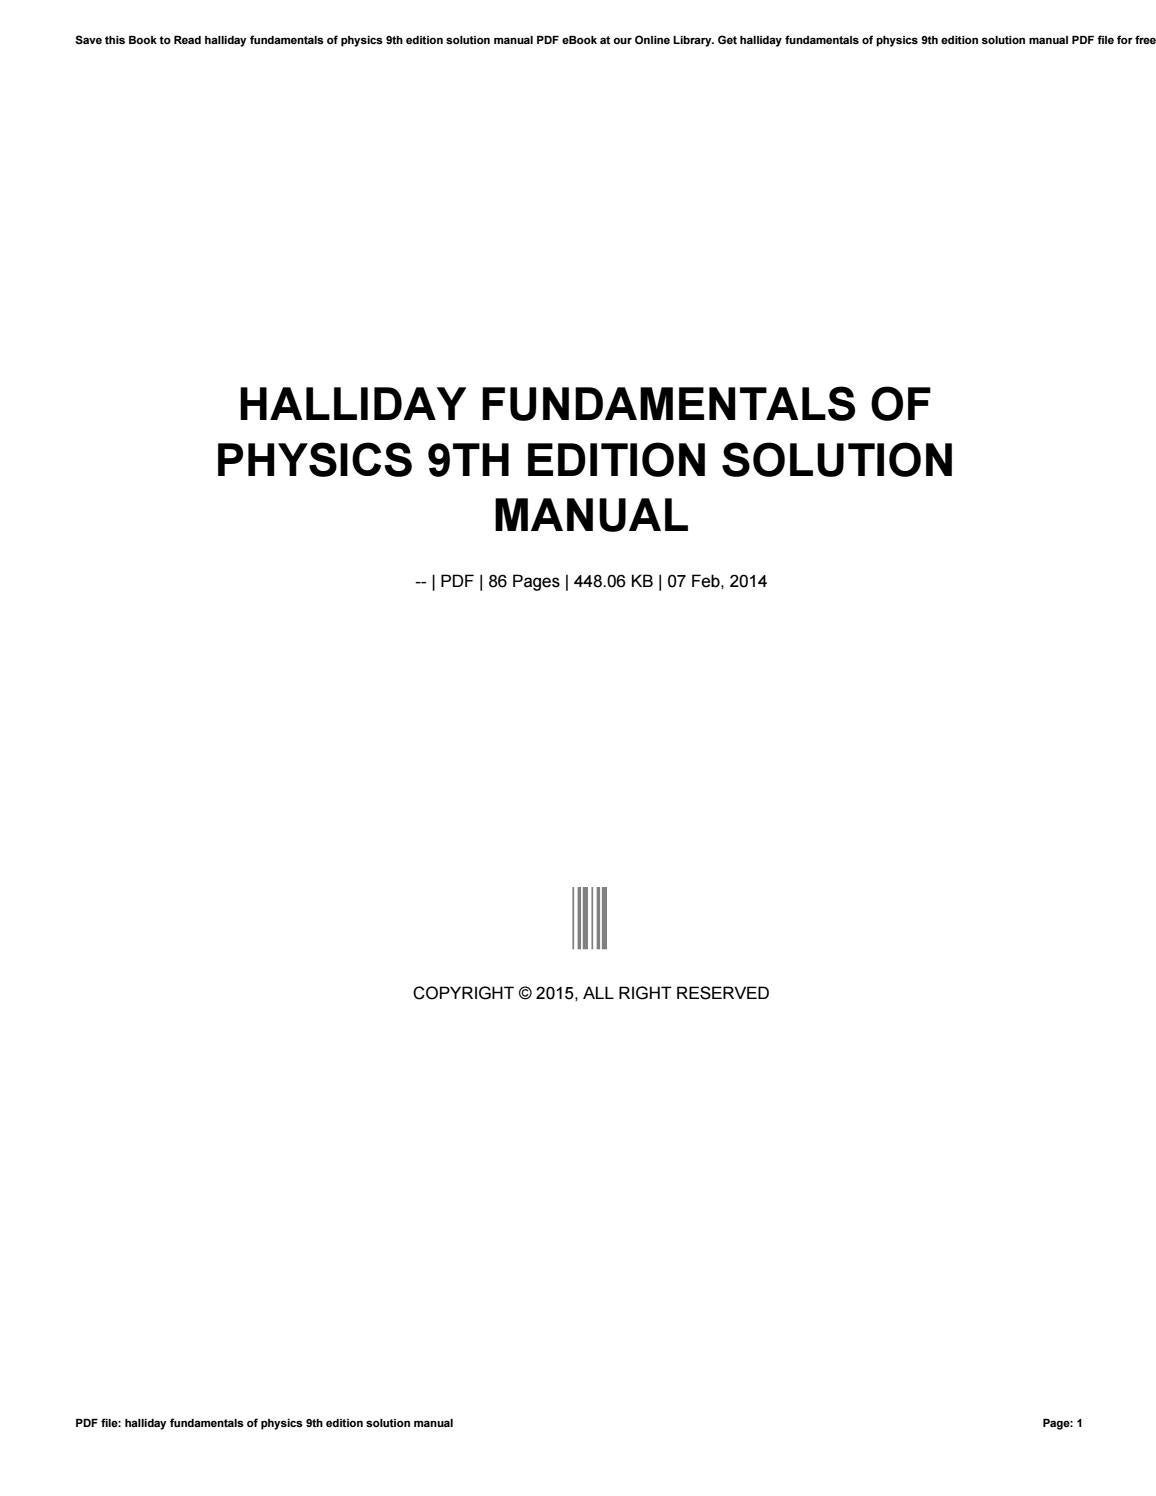 Halliday fundamentals of physics 9th edition solution manual by hezll68 -  issuu